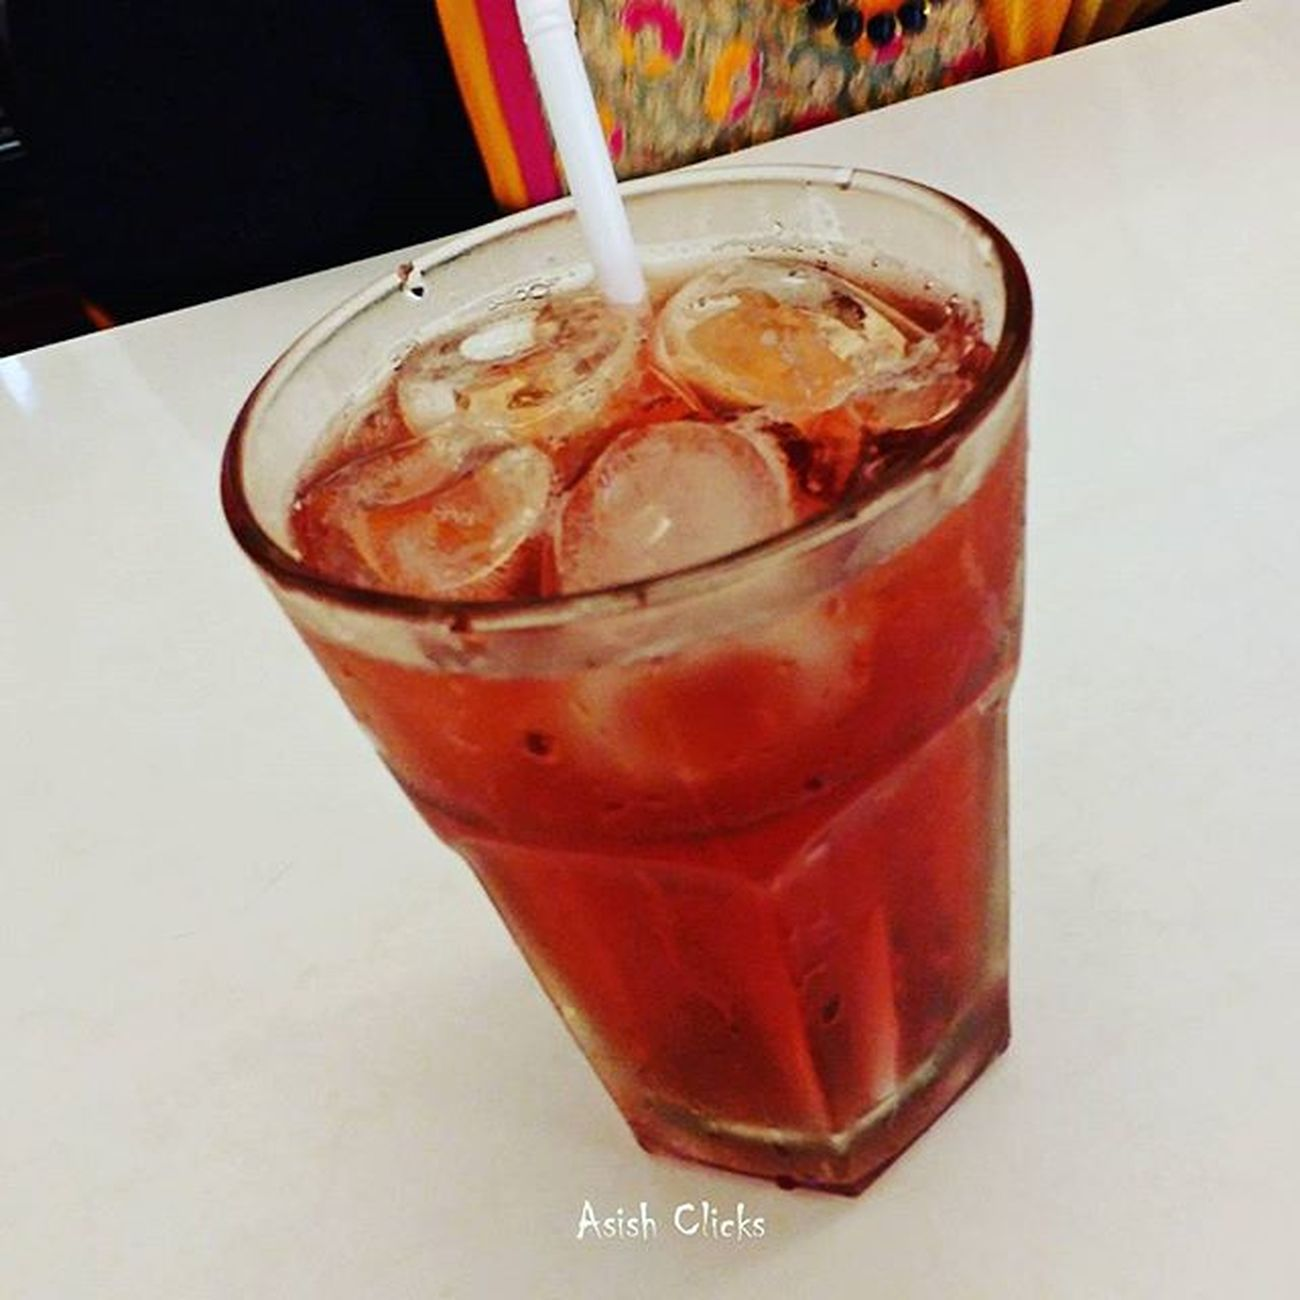 Cranberry Iced Tea Icedtea Icetea Drink Drinks Favouritepizza Kottayam Kerala Asishclicks Mobilephotography Eats Eatingout Eatthis Foodies Foodphotography Foodie Foodlover Food Chill Colddrinks Foodporn Foodgasm Loveit Awesome Refreshing Drinking cranberryjuice